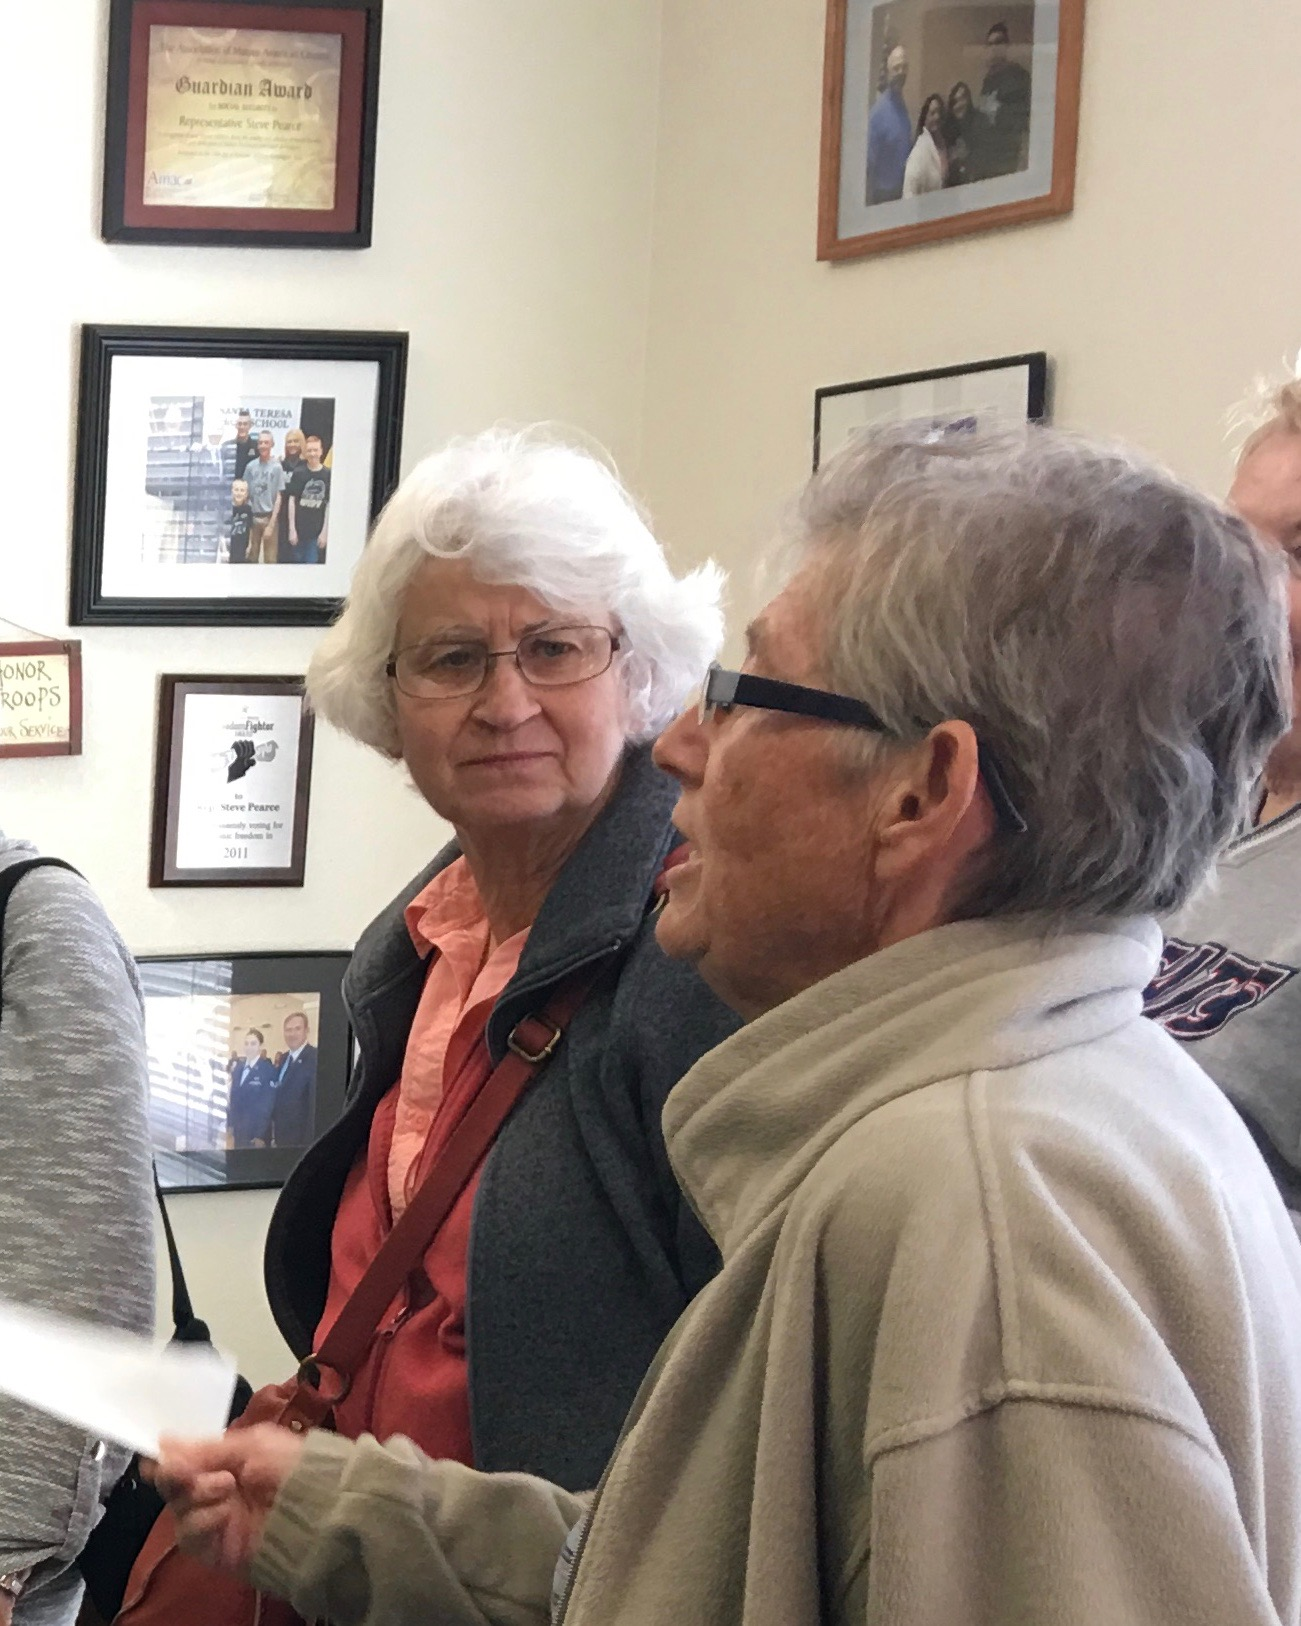 Vi Beadle in one of her many trips to deliver letters and her opinion to taff at Rep. Steve Pearce's (R-NM) local office. -